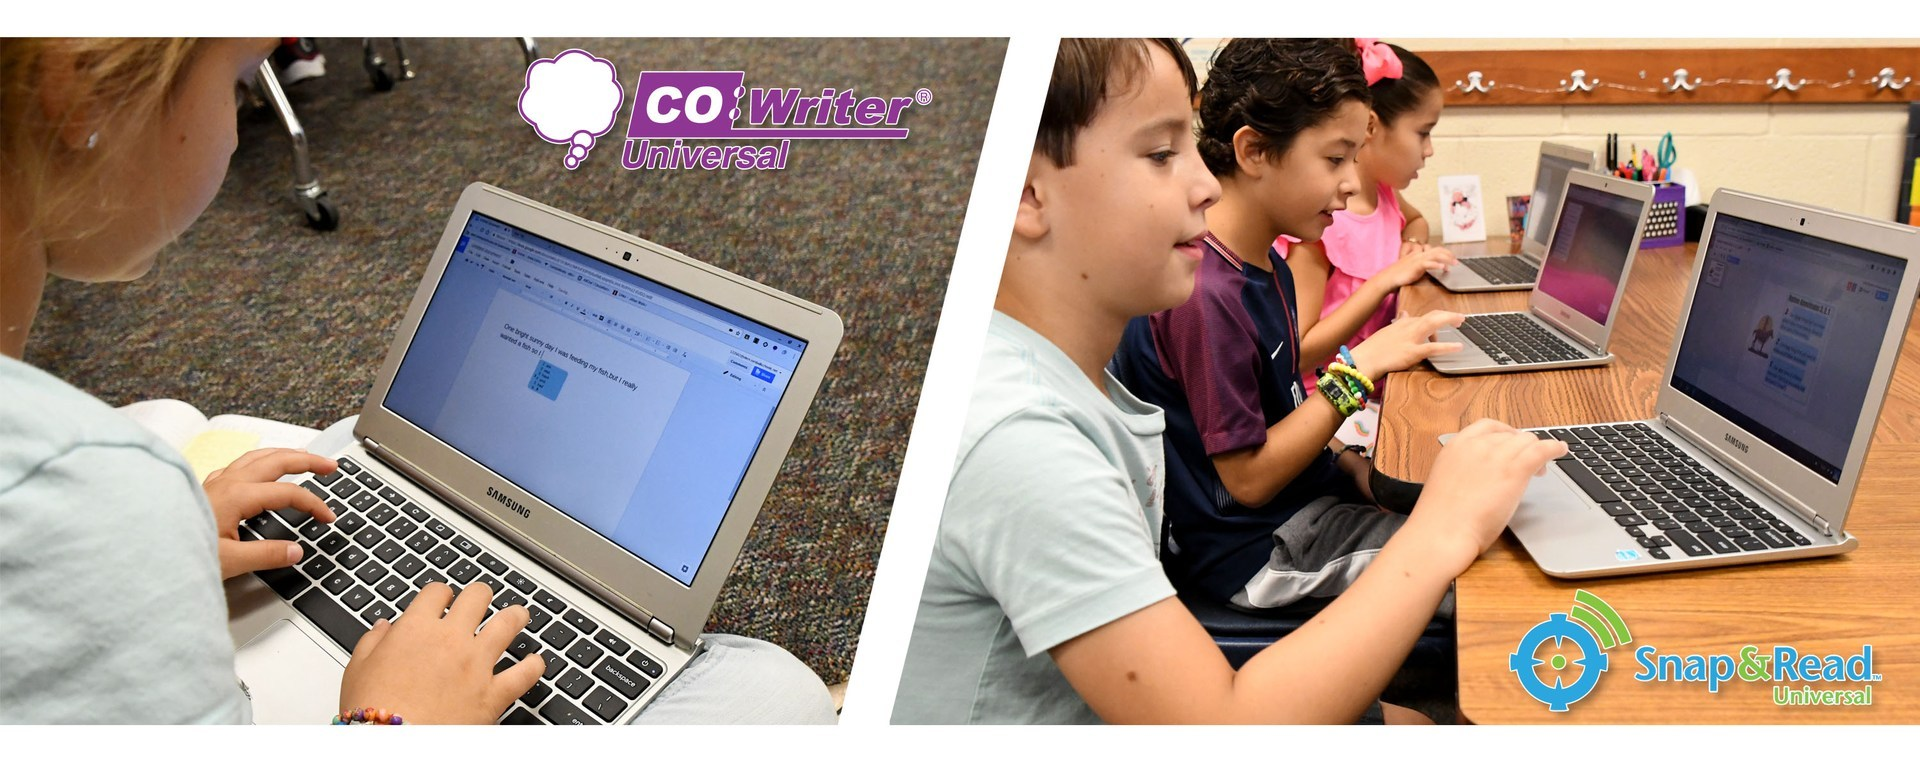 Picture of a laptop with writing for Co Writer next to a picture of students sitting at desks with computers using curriculum access tools